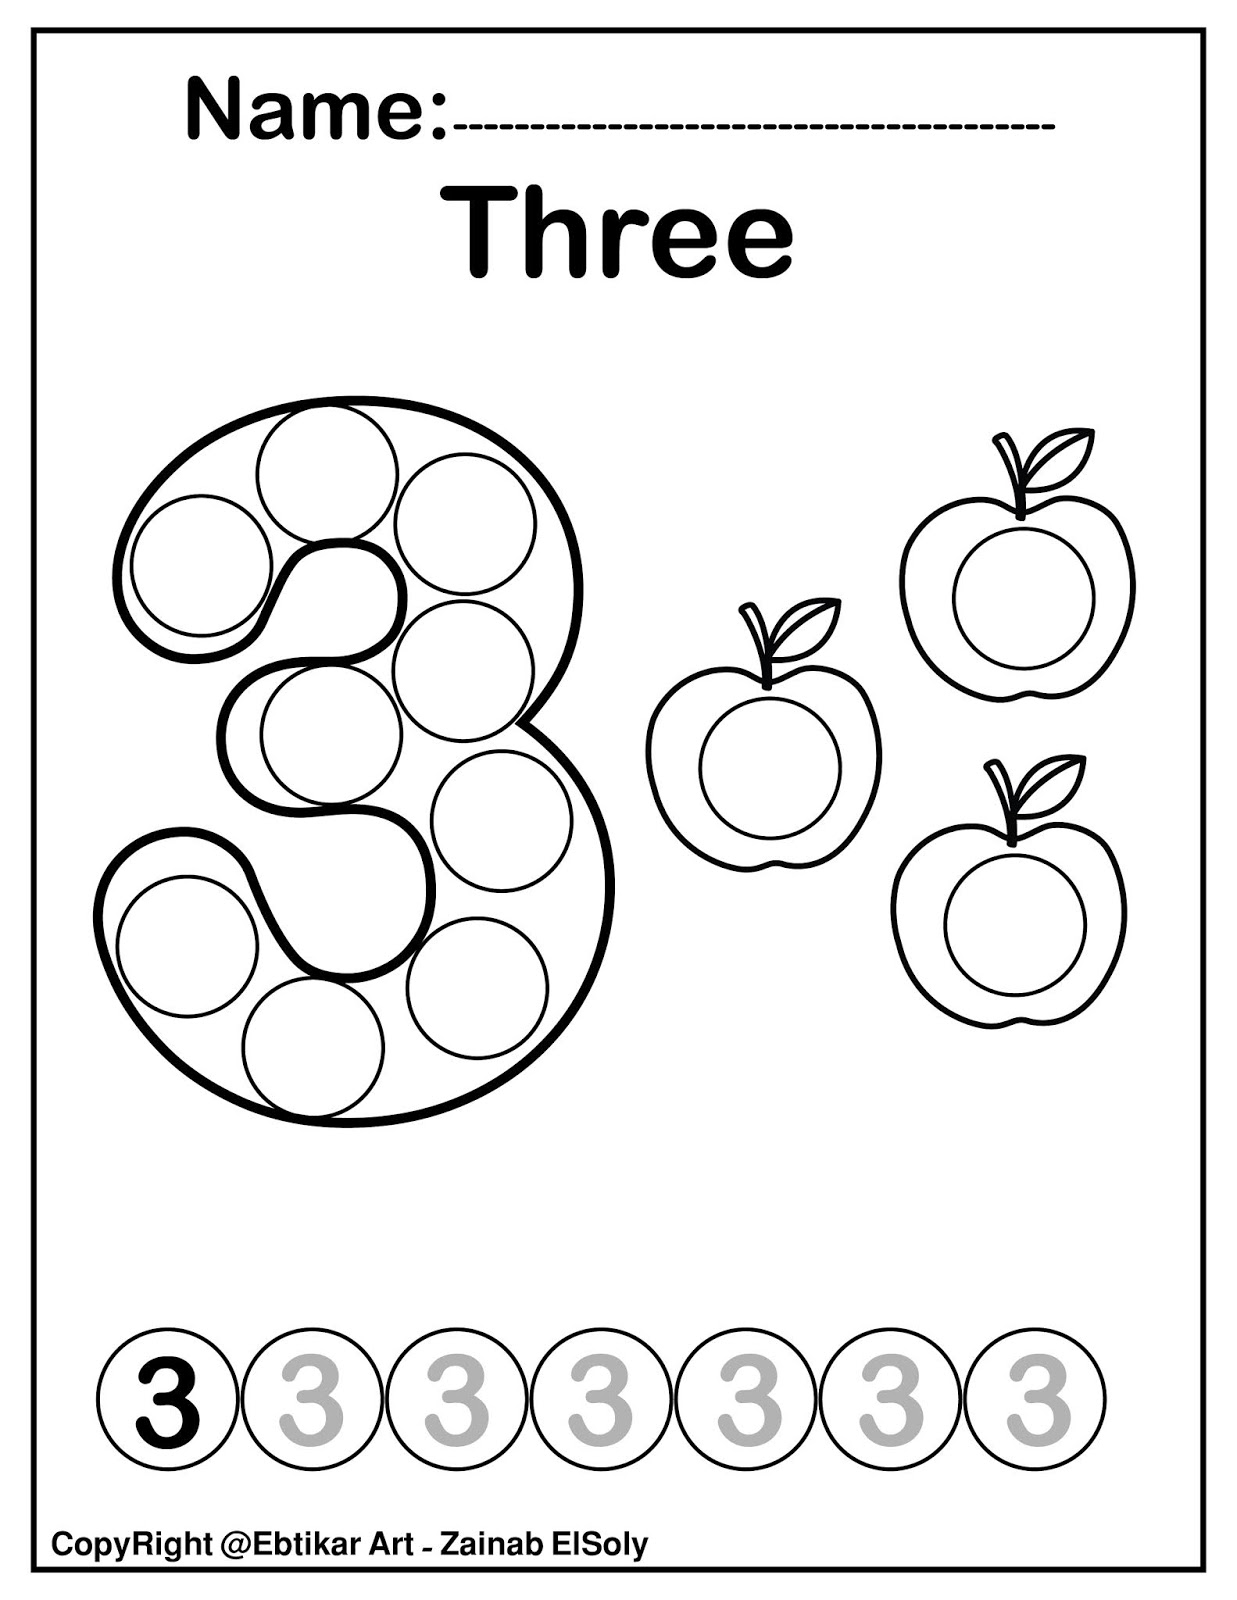 Worksheet Dot Marker Counting